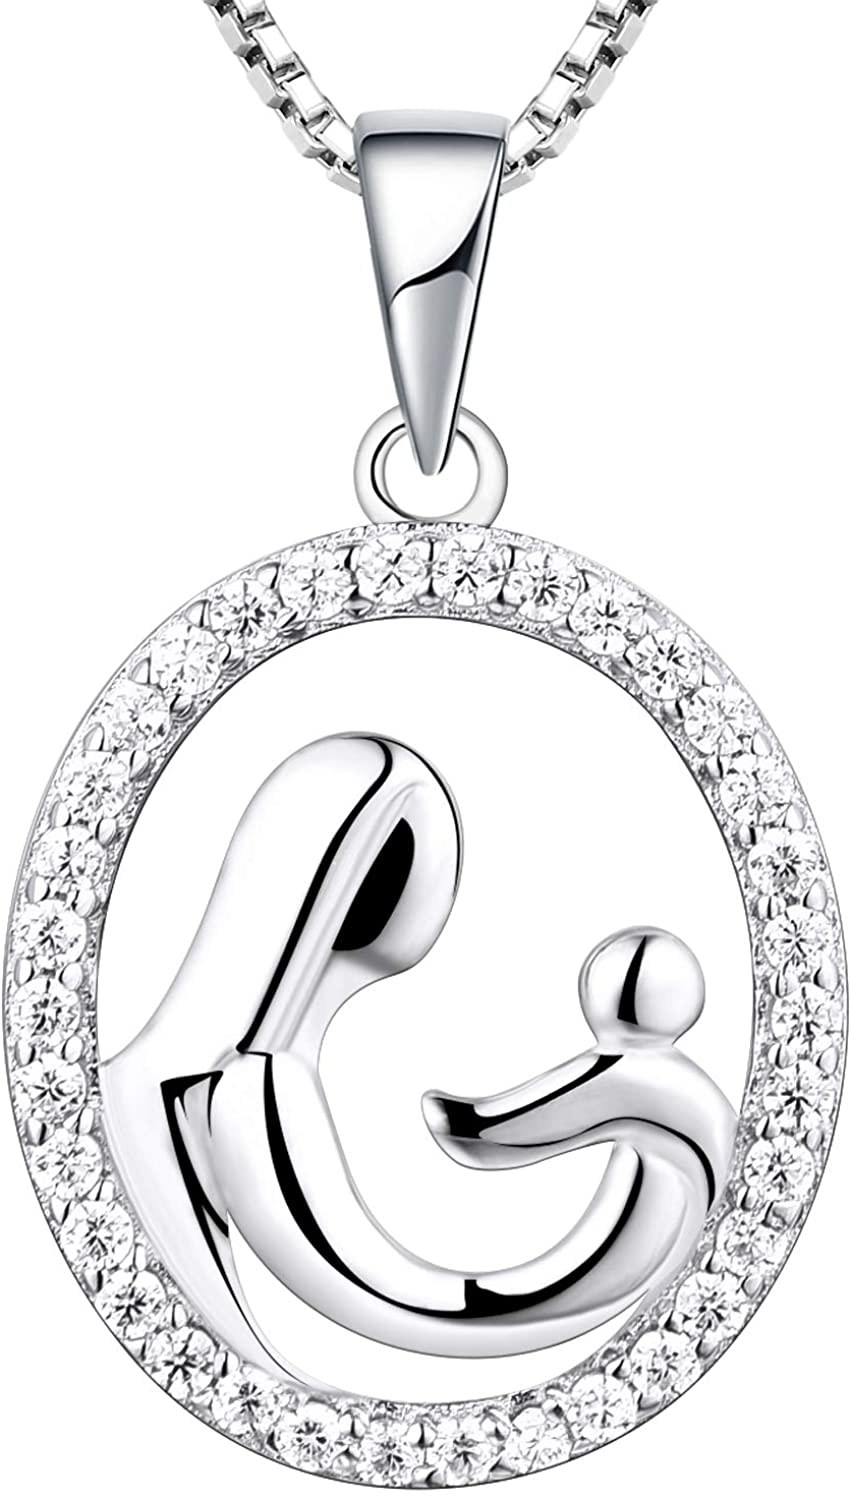 YL Mother and Daughter Necklace Sterling Silver Mum Hold Child Love Heart Pendant Cubic Zirconia Jewelry Gifts for Moms